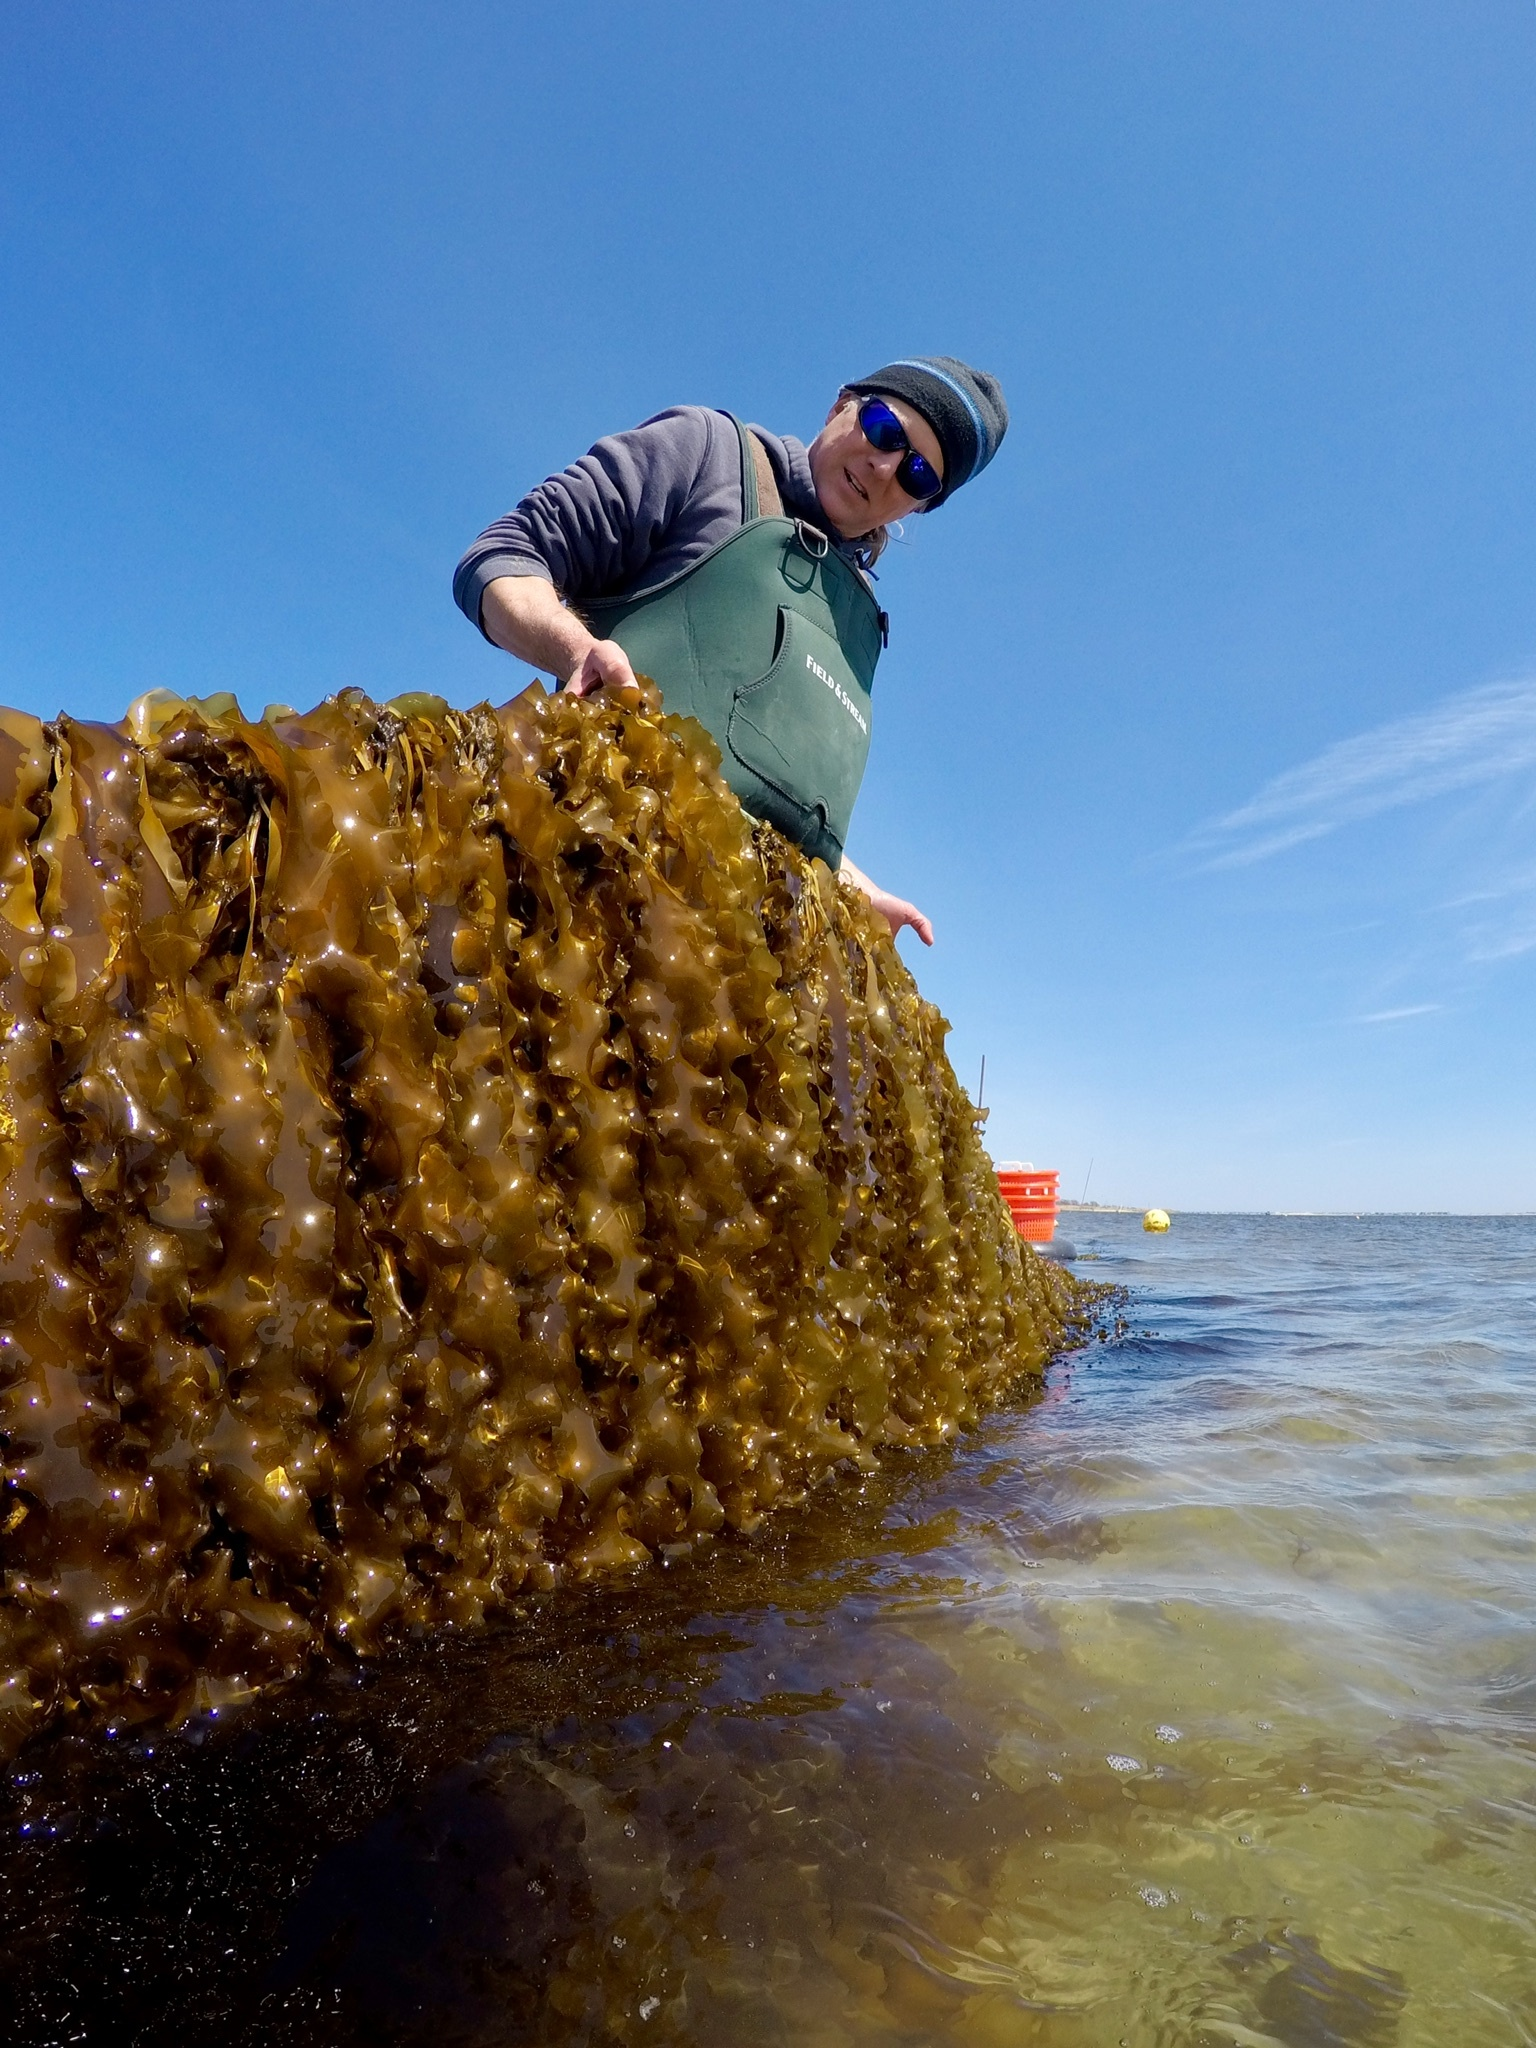 Stony Brook University scientist Michael Doall with the sugar kelp the university's researchers have been growing in Moriches Bay.